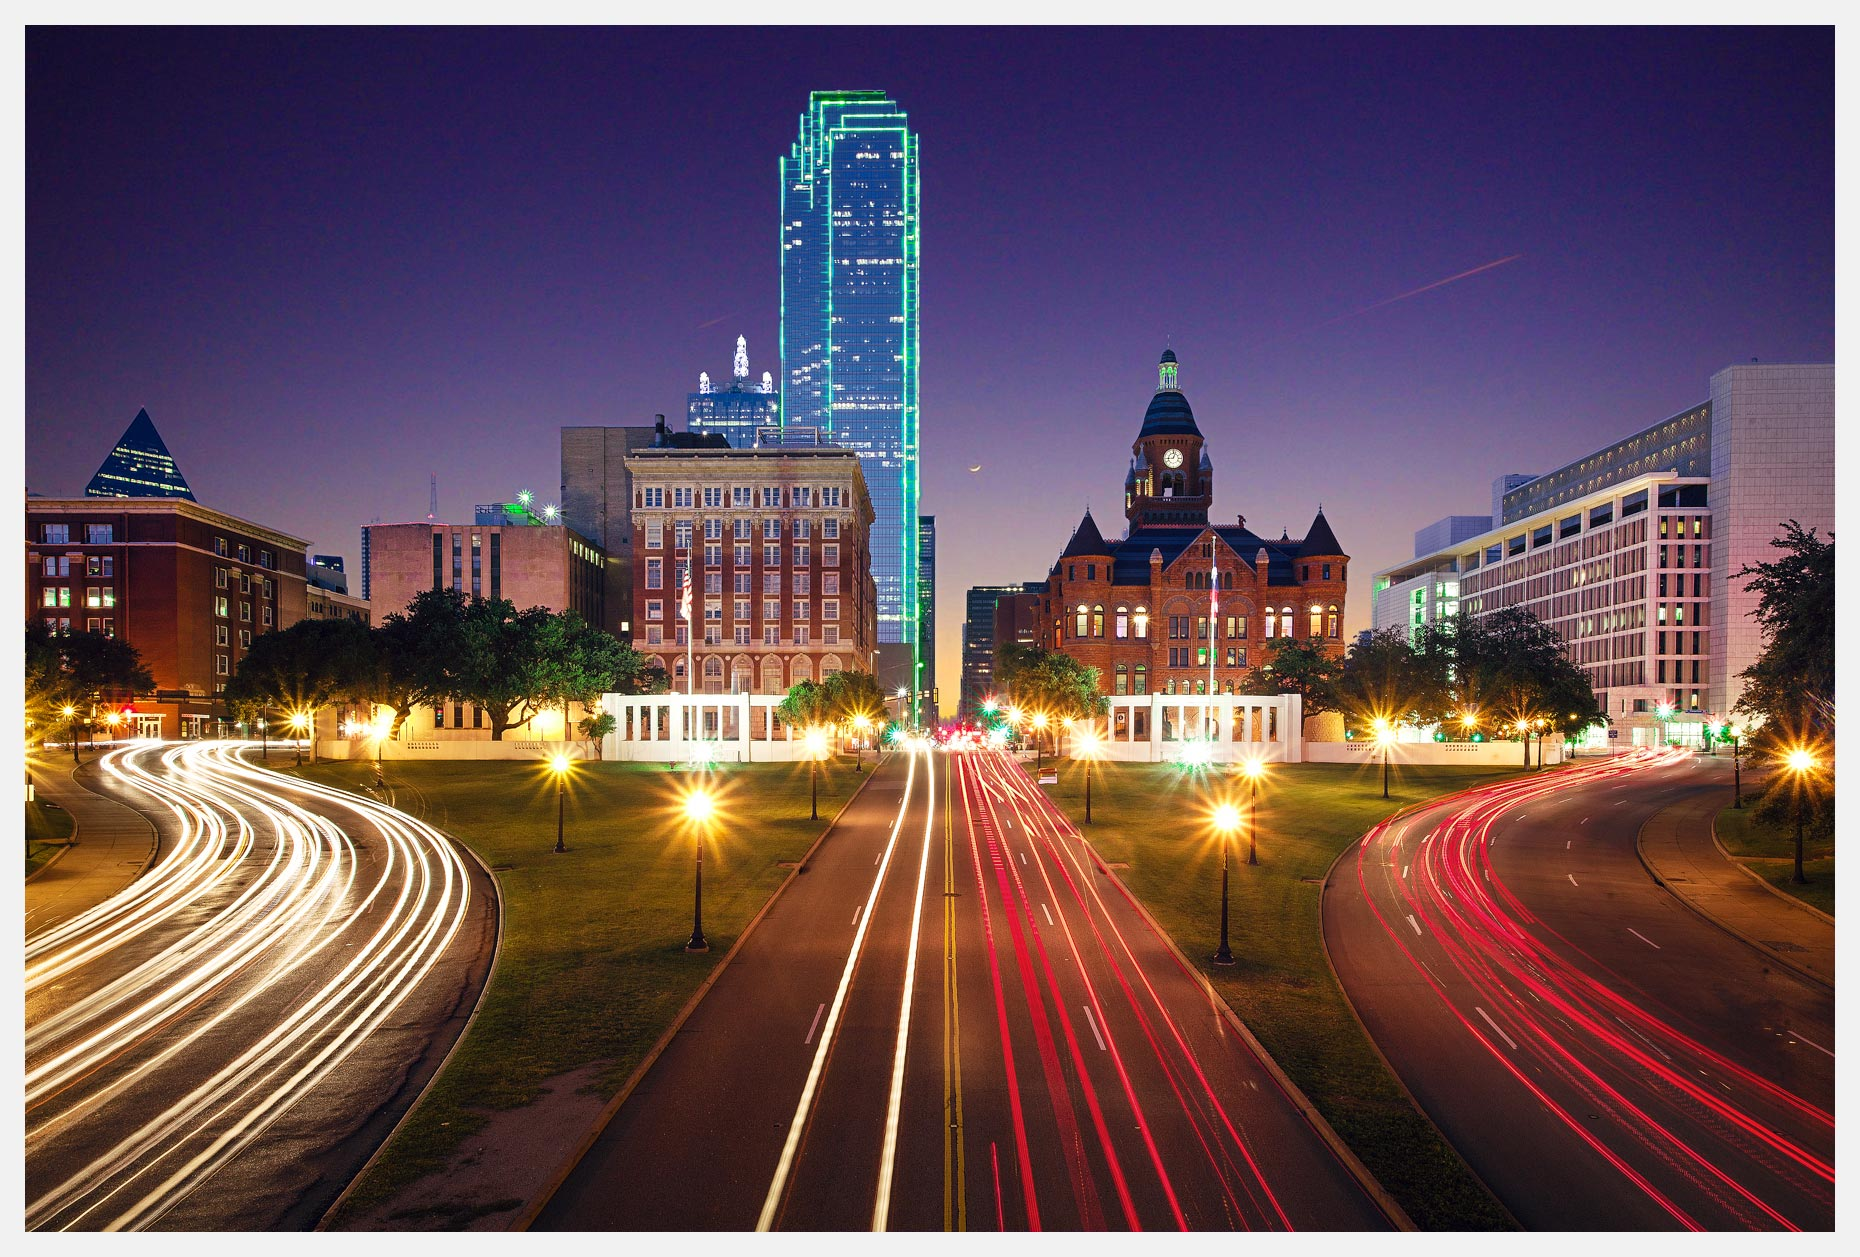 Dealey Plaza Dallas Texas Skyline View